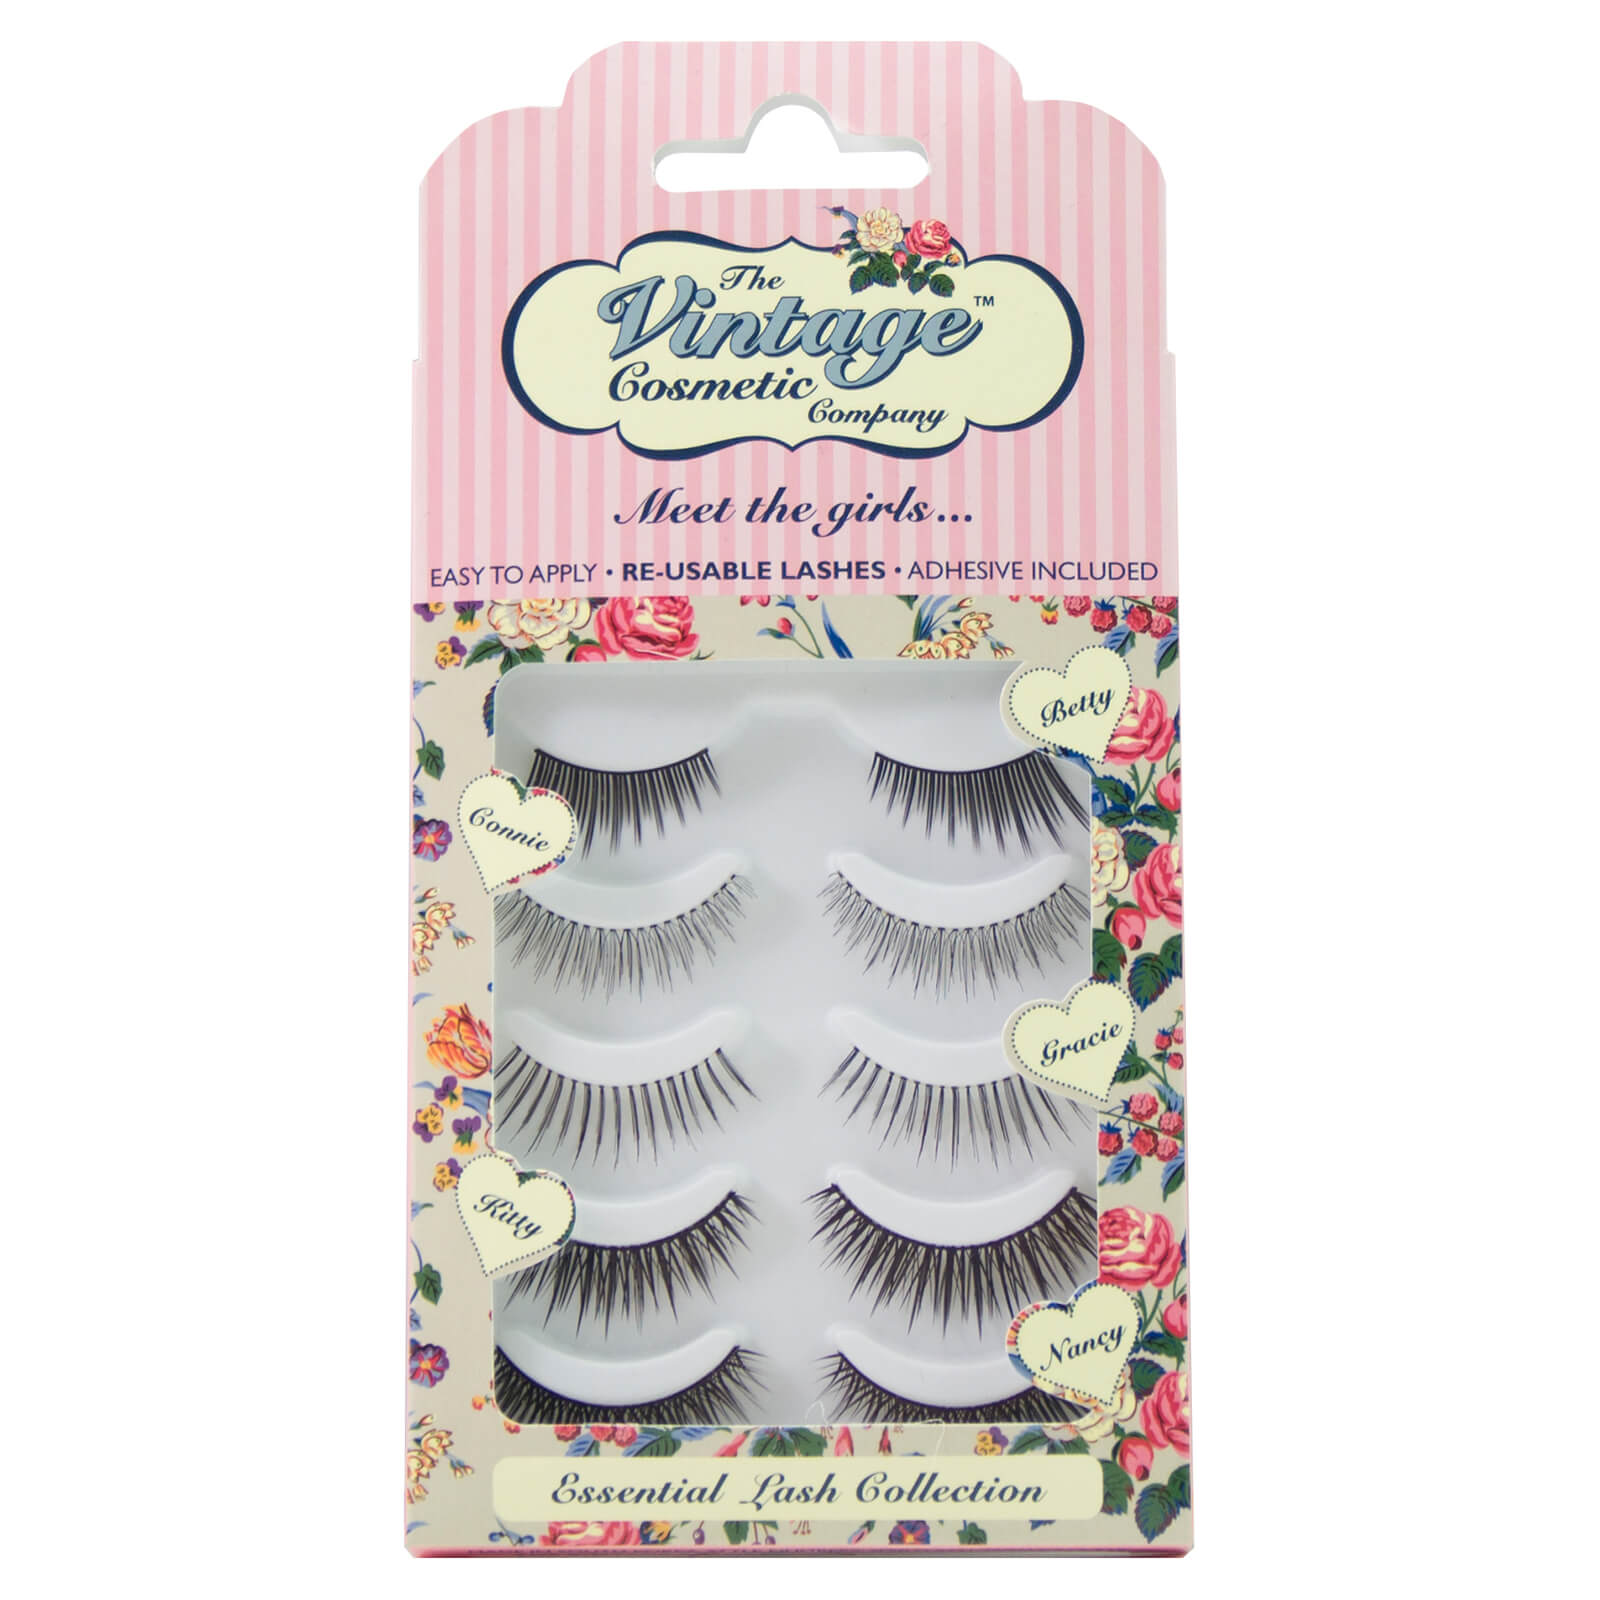 a854f3ba1e2 The Vintage Cosmetics Company Essential Lash Collection | Free Shipping |  Lookfantastic